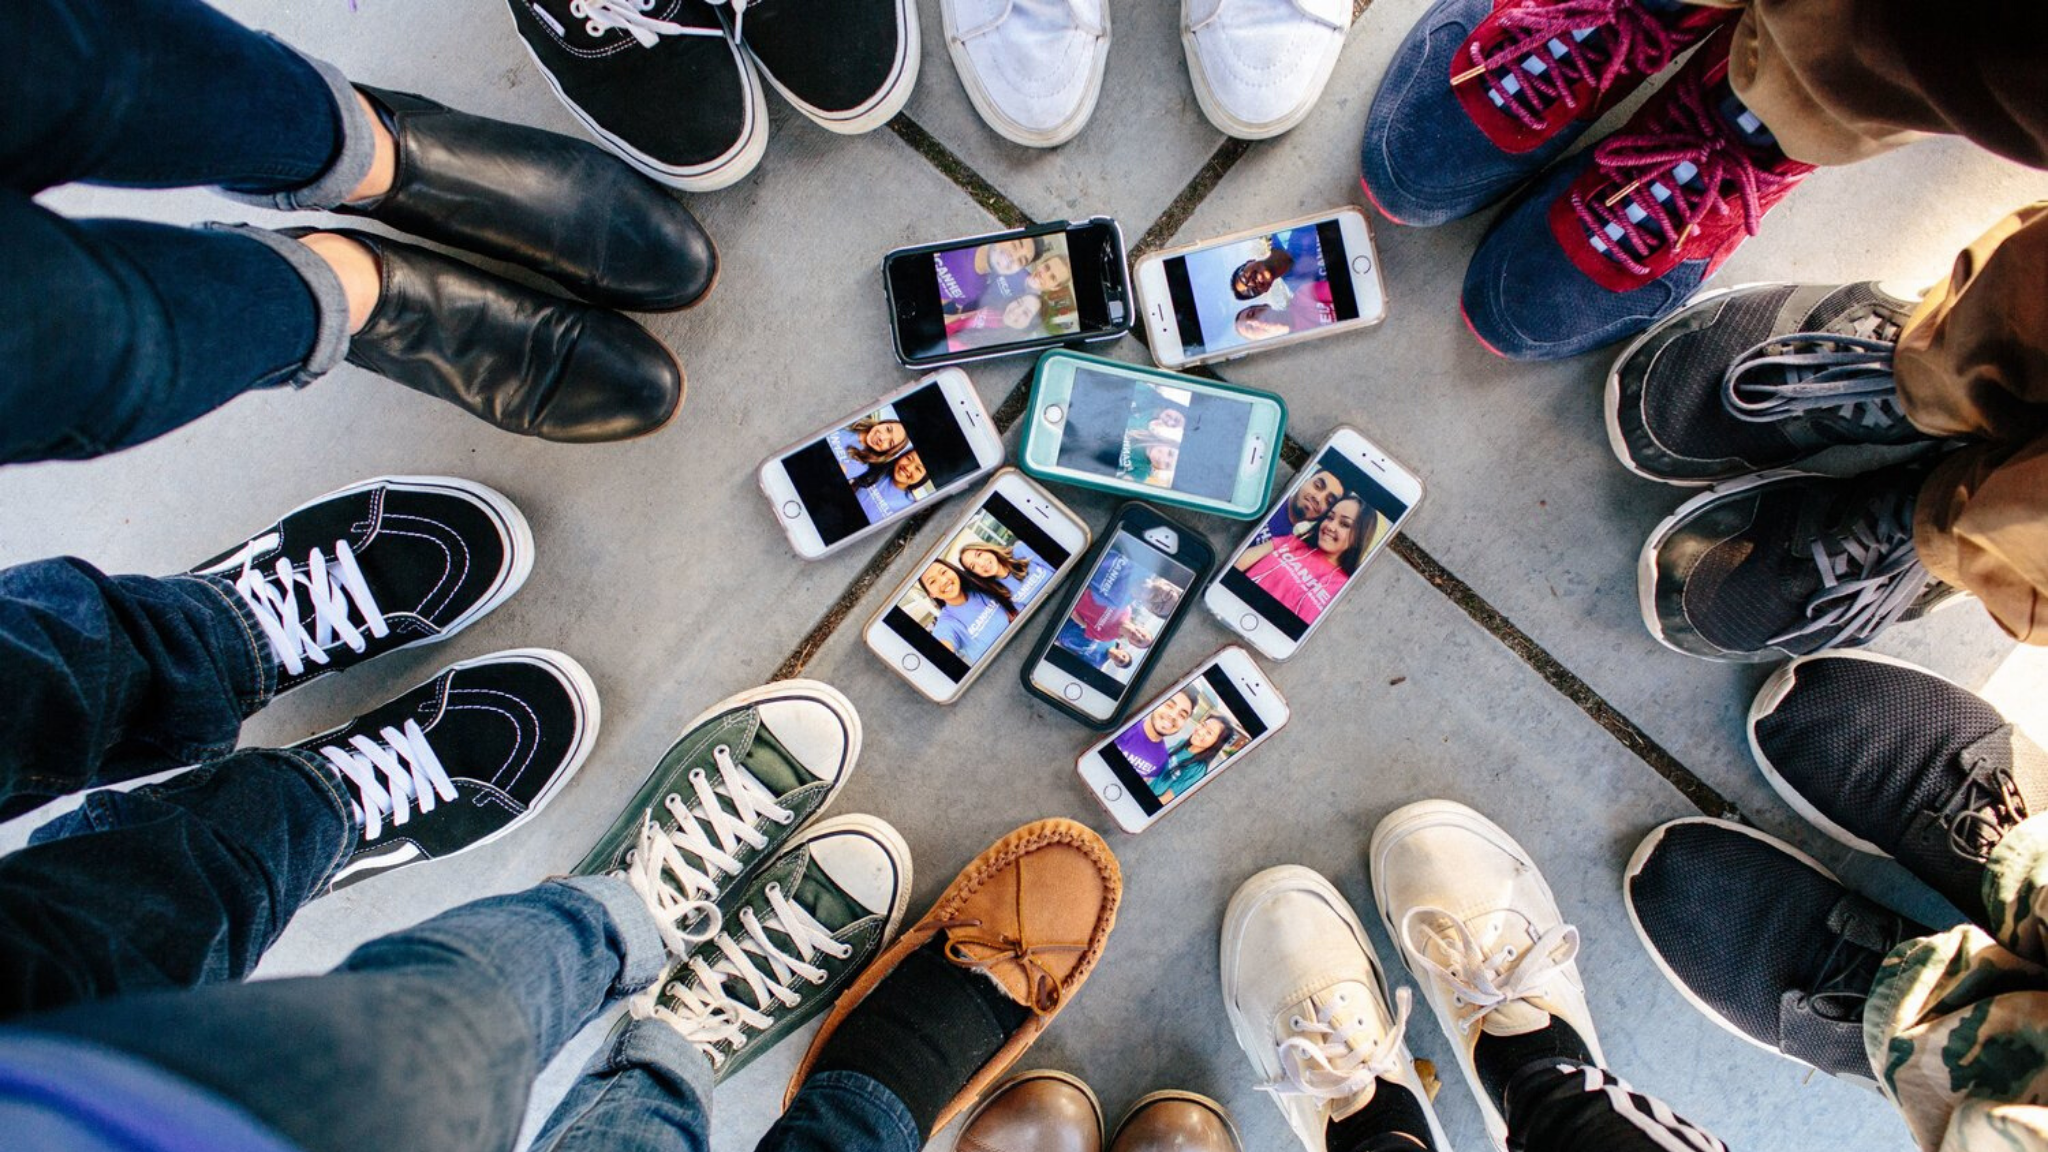 A circle of people's shoes pointing to a group of smartphones.